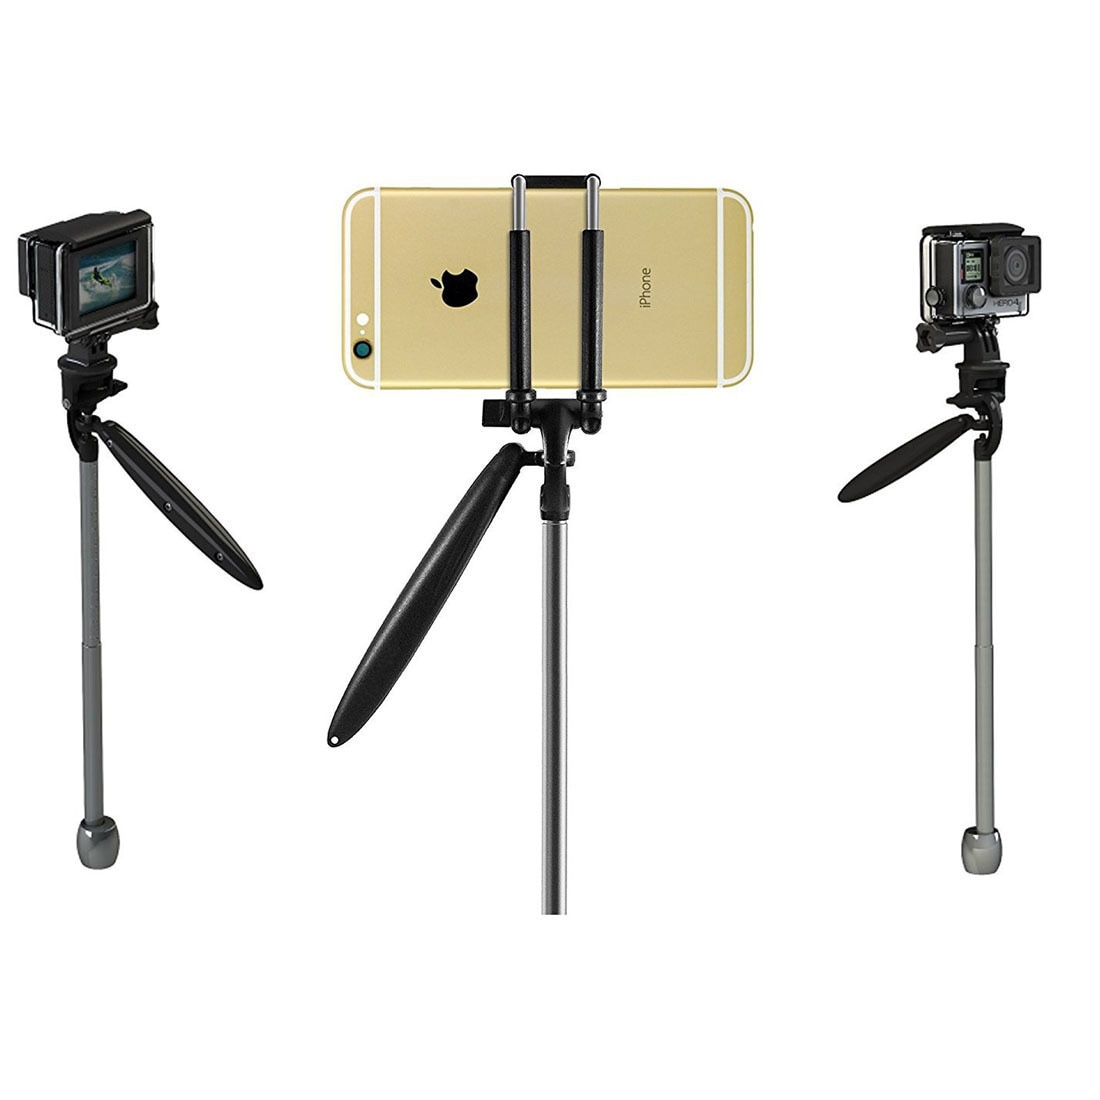 Mini Hold Cloud Platform Shoot Stable Organ General Purpose For Gopro Go Pro Action Camera Accessories Parts Phone